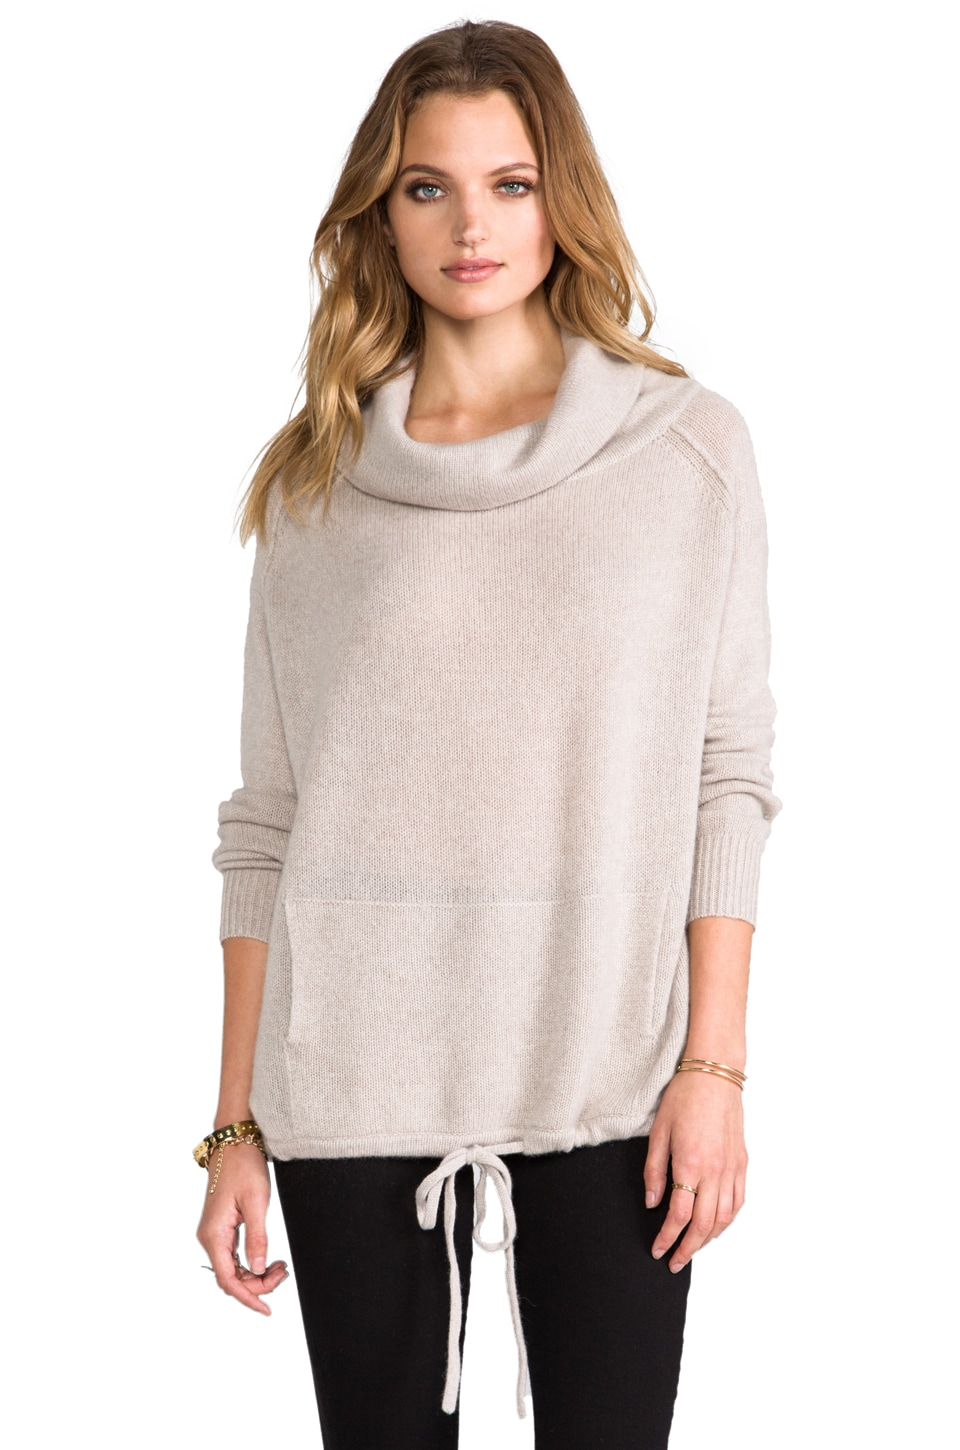 360 Sweater Aspen Cashmere Sweater in Oatmeal